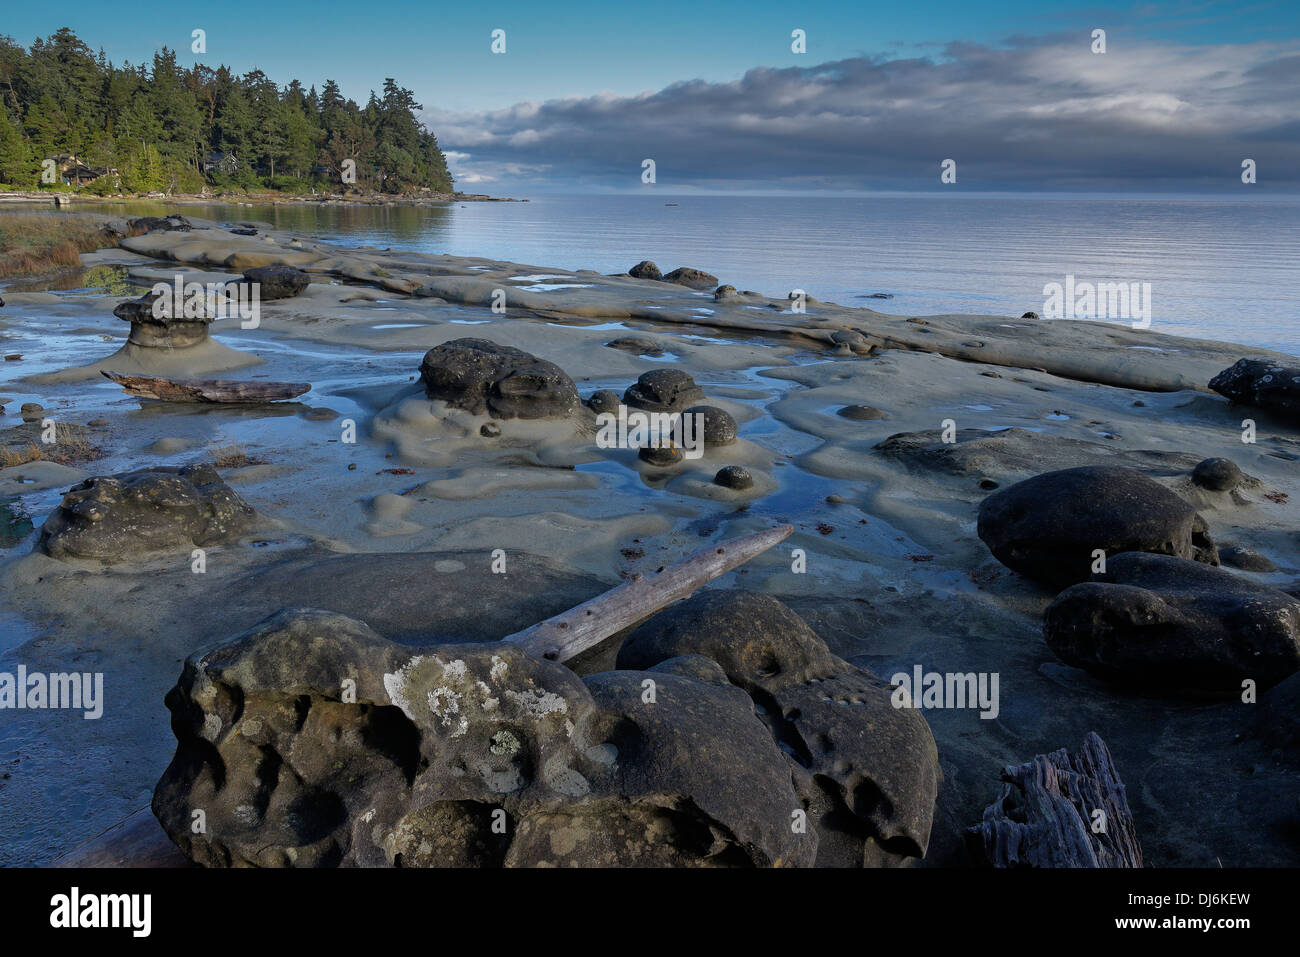 Tidepools, Whaling Station Bay, Hornby Island, British Columbia, Canada - Stock Image